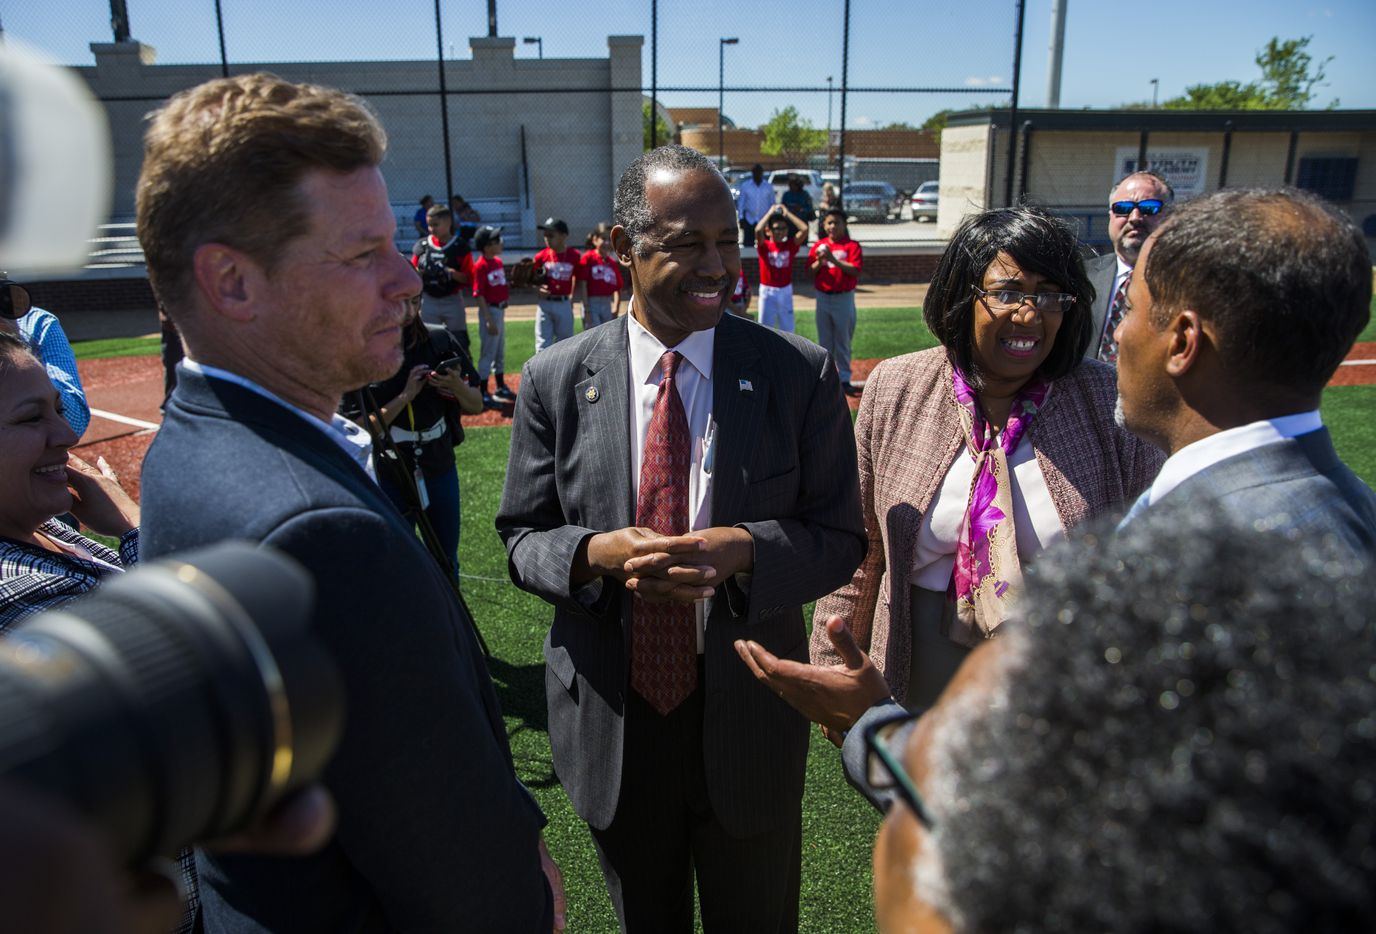 U.S. Secretary of Housing and Urban Development Ben Carson, center, and his wife, Candy Carson, speak to supporters while they take a tour of the Dallas Housing Authority. (Ashley Landis/The Dallas Morning News)